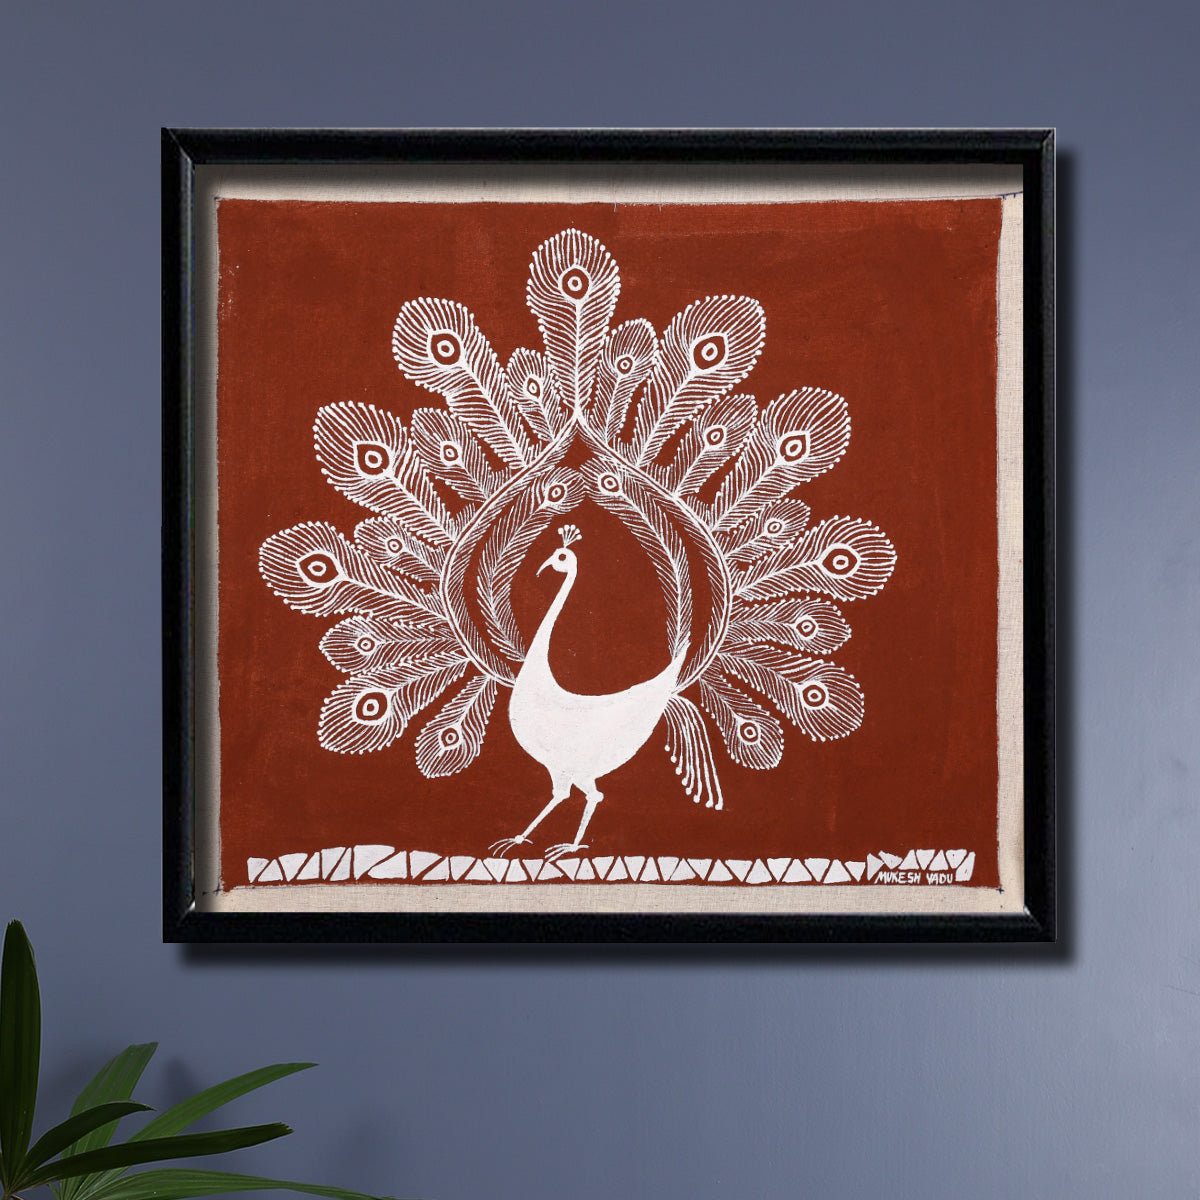 Tribal warli painting of a peacock by mukesh vadu india kal tribal warli painting of a peacock by mukesh vadu thecheapjerseys Image collections